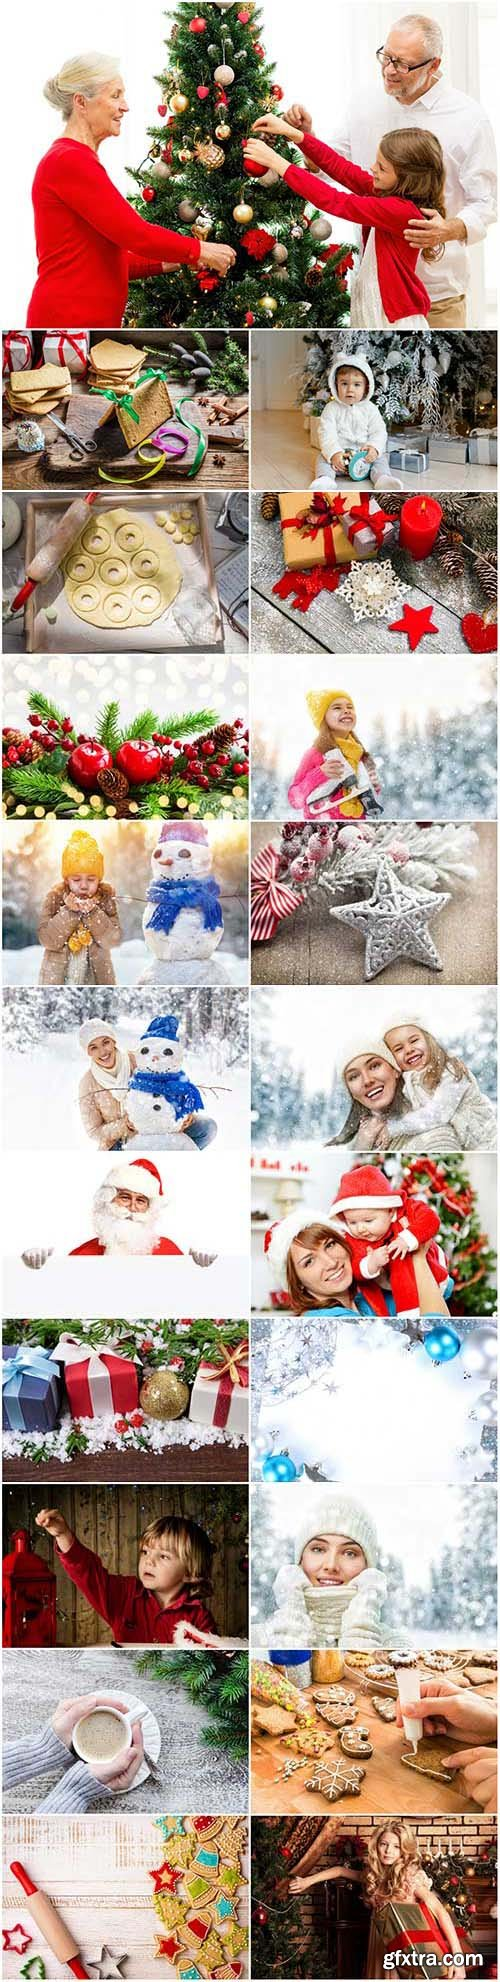 New Year and Christmas stock photos 94